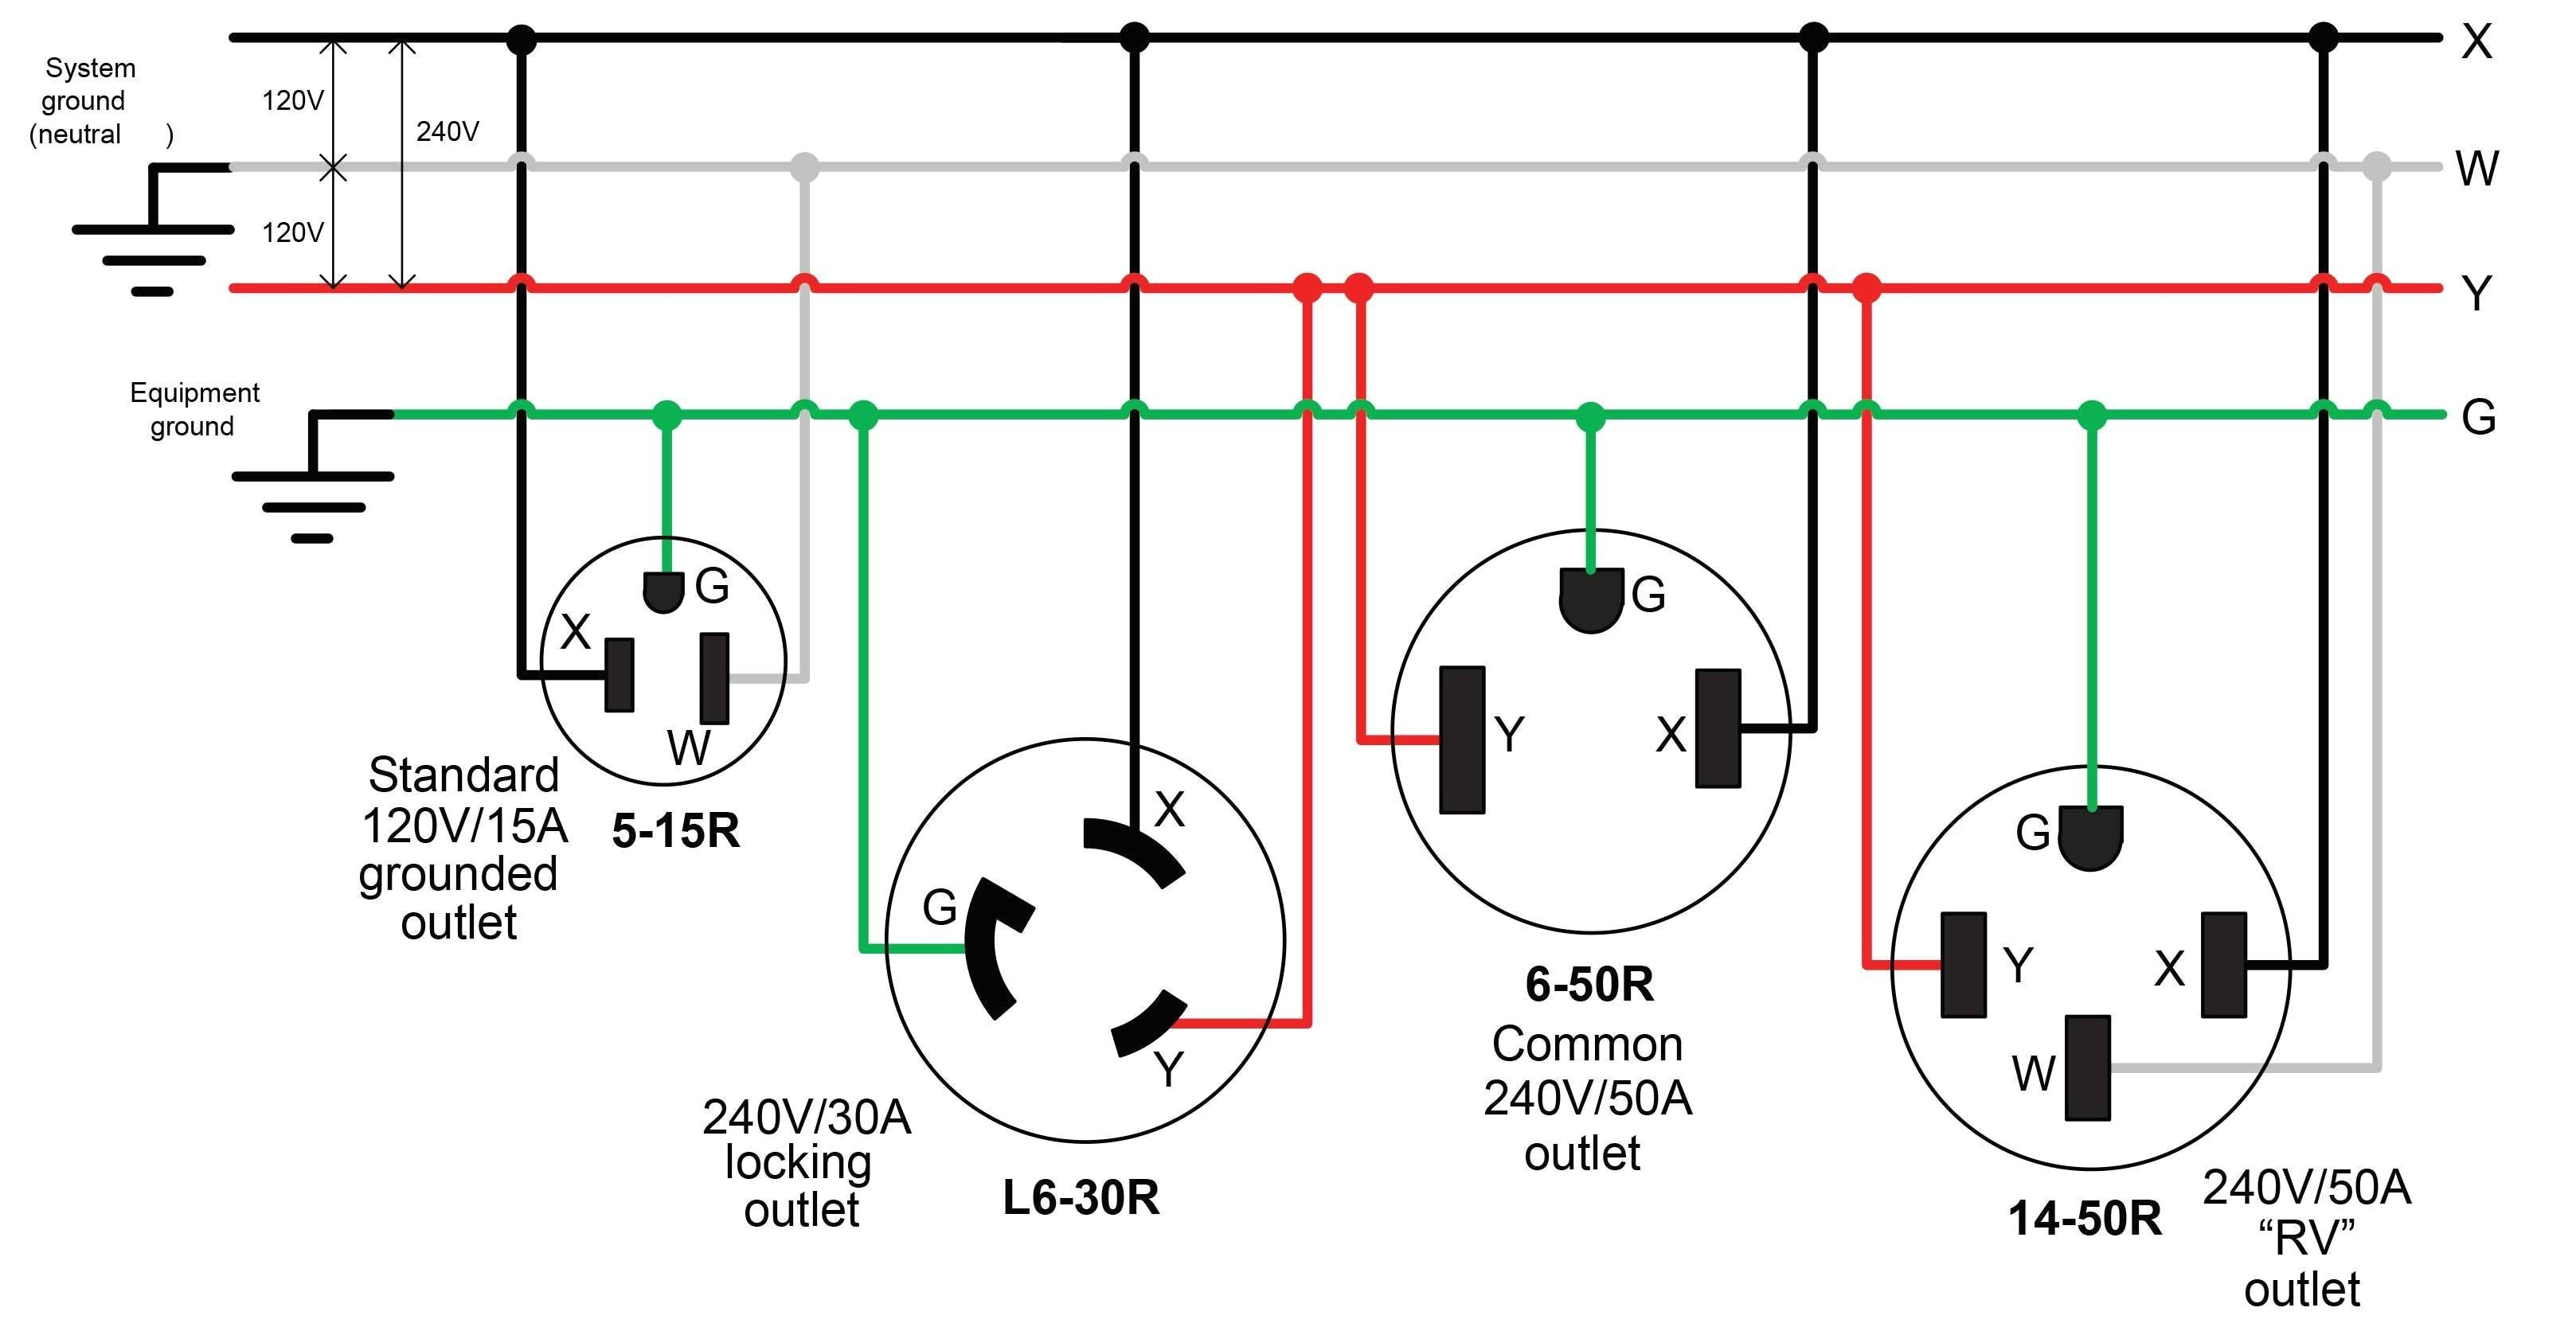 Receptacle Wiring Diagram Examples - Wiring Diagram Data - Receptacle Wiring Diagram Examples